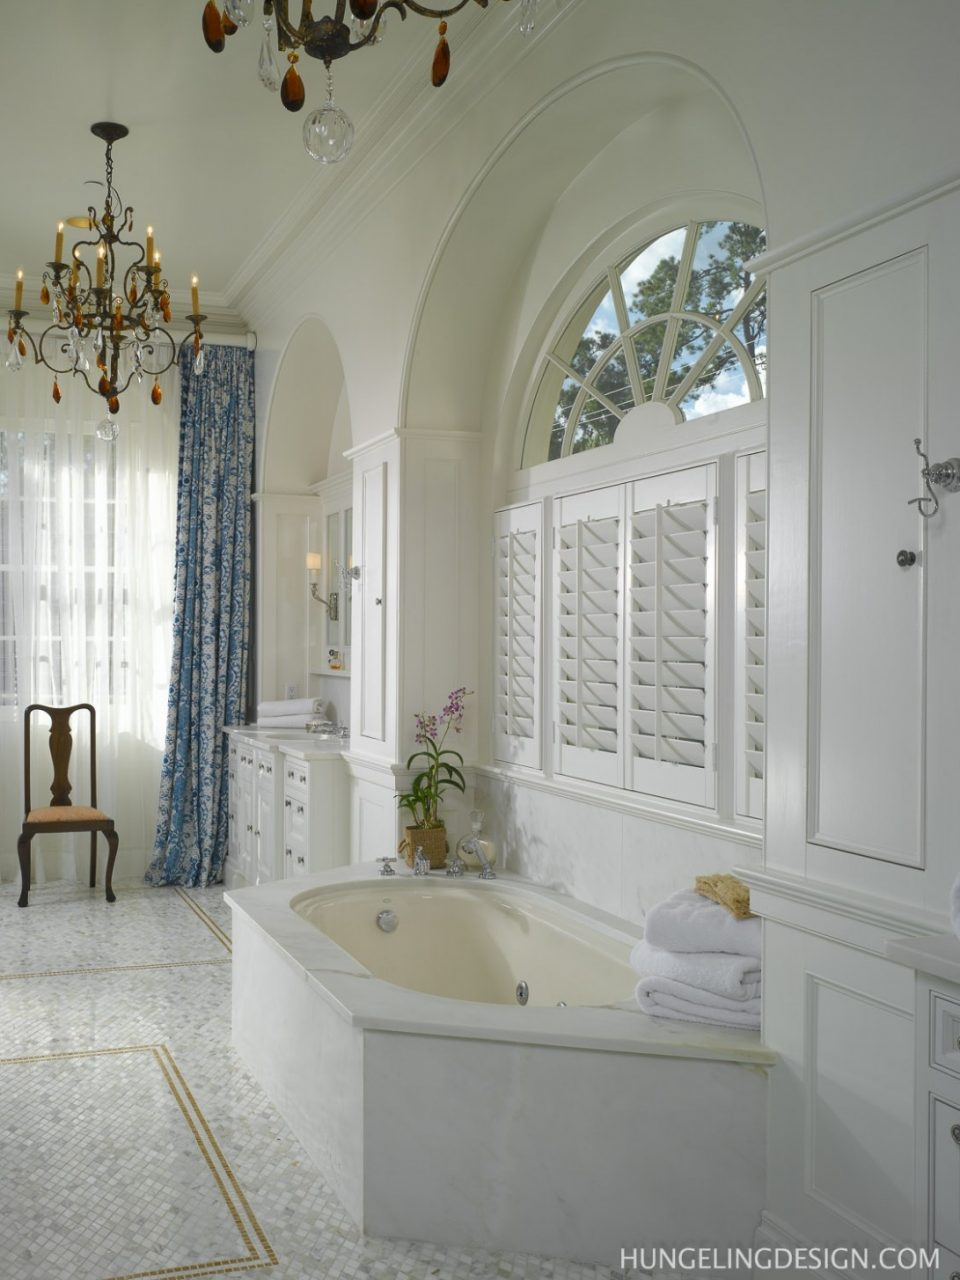 Image Of Bathroom Remodel New Orleans And Amazing Bathroom Appwoo